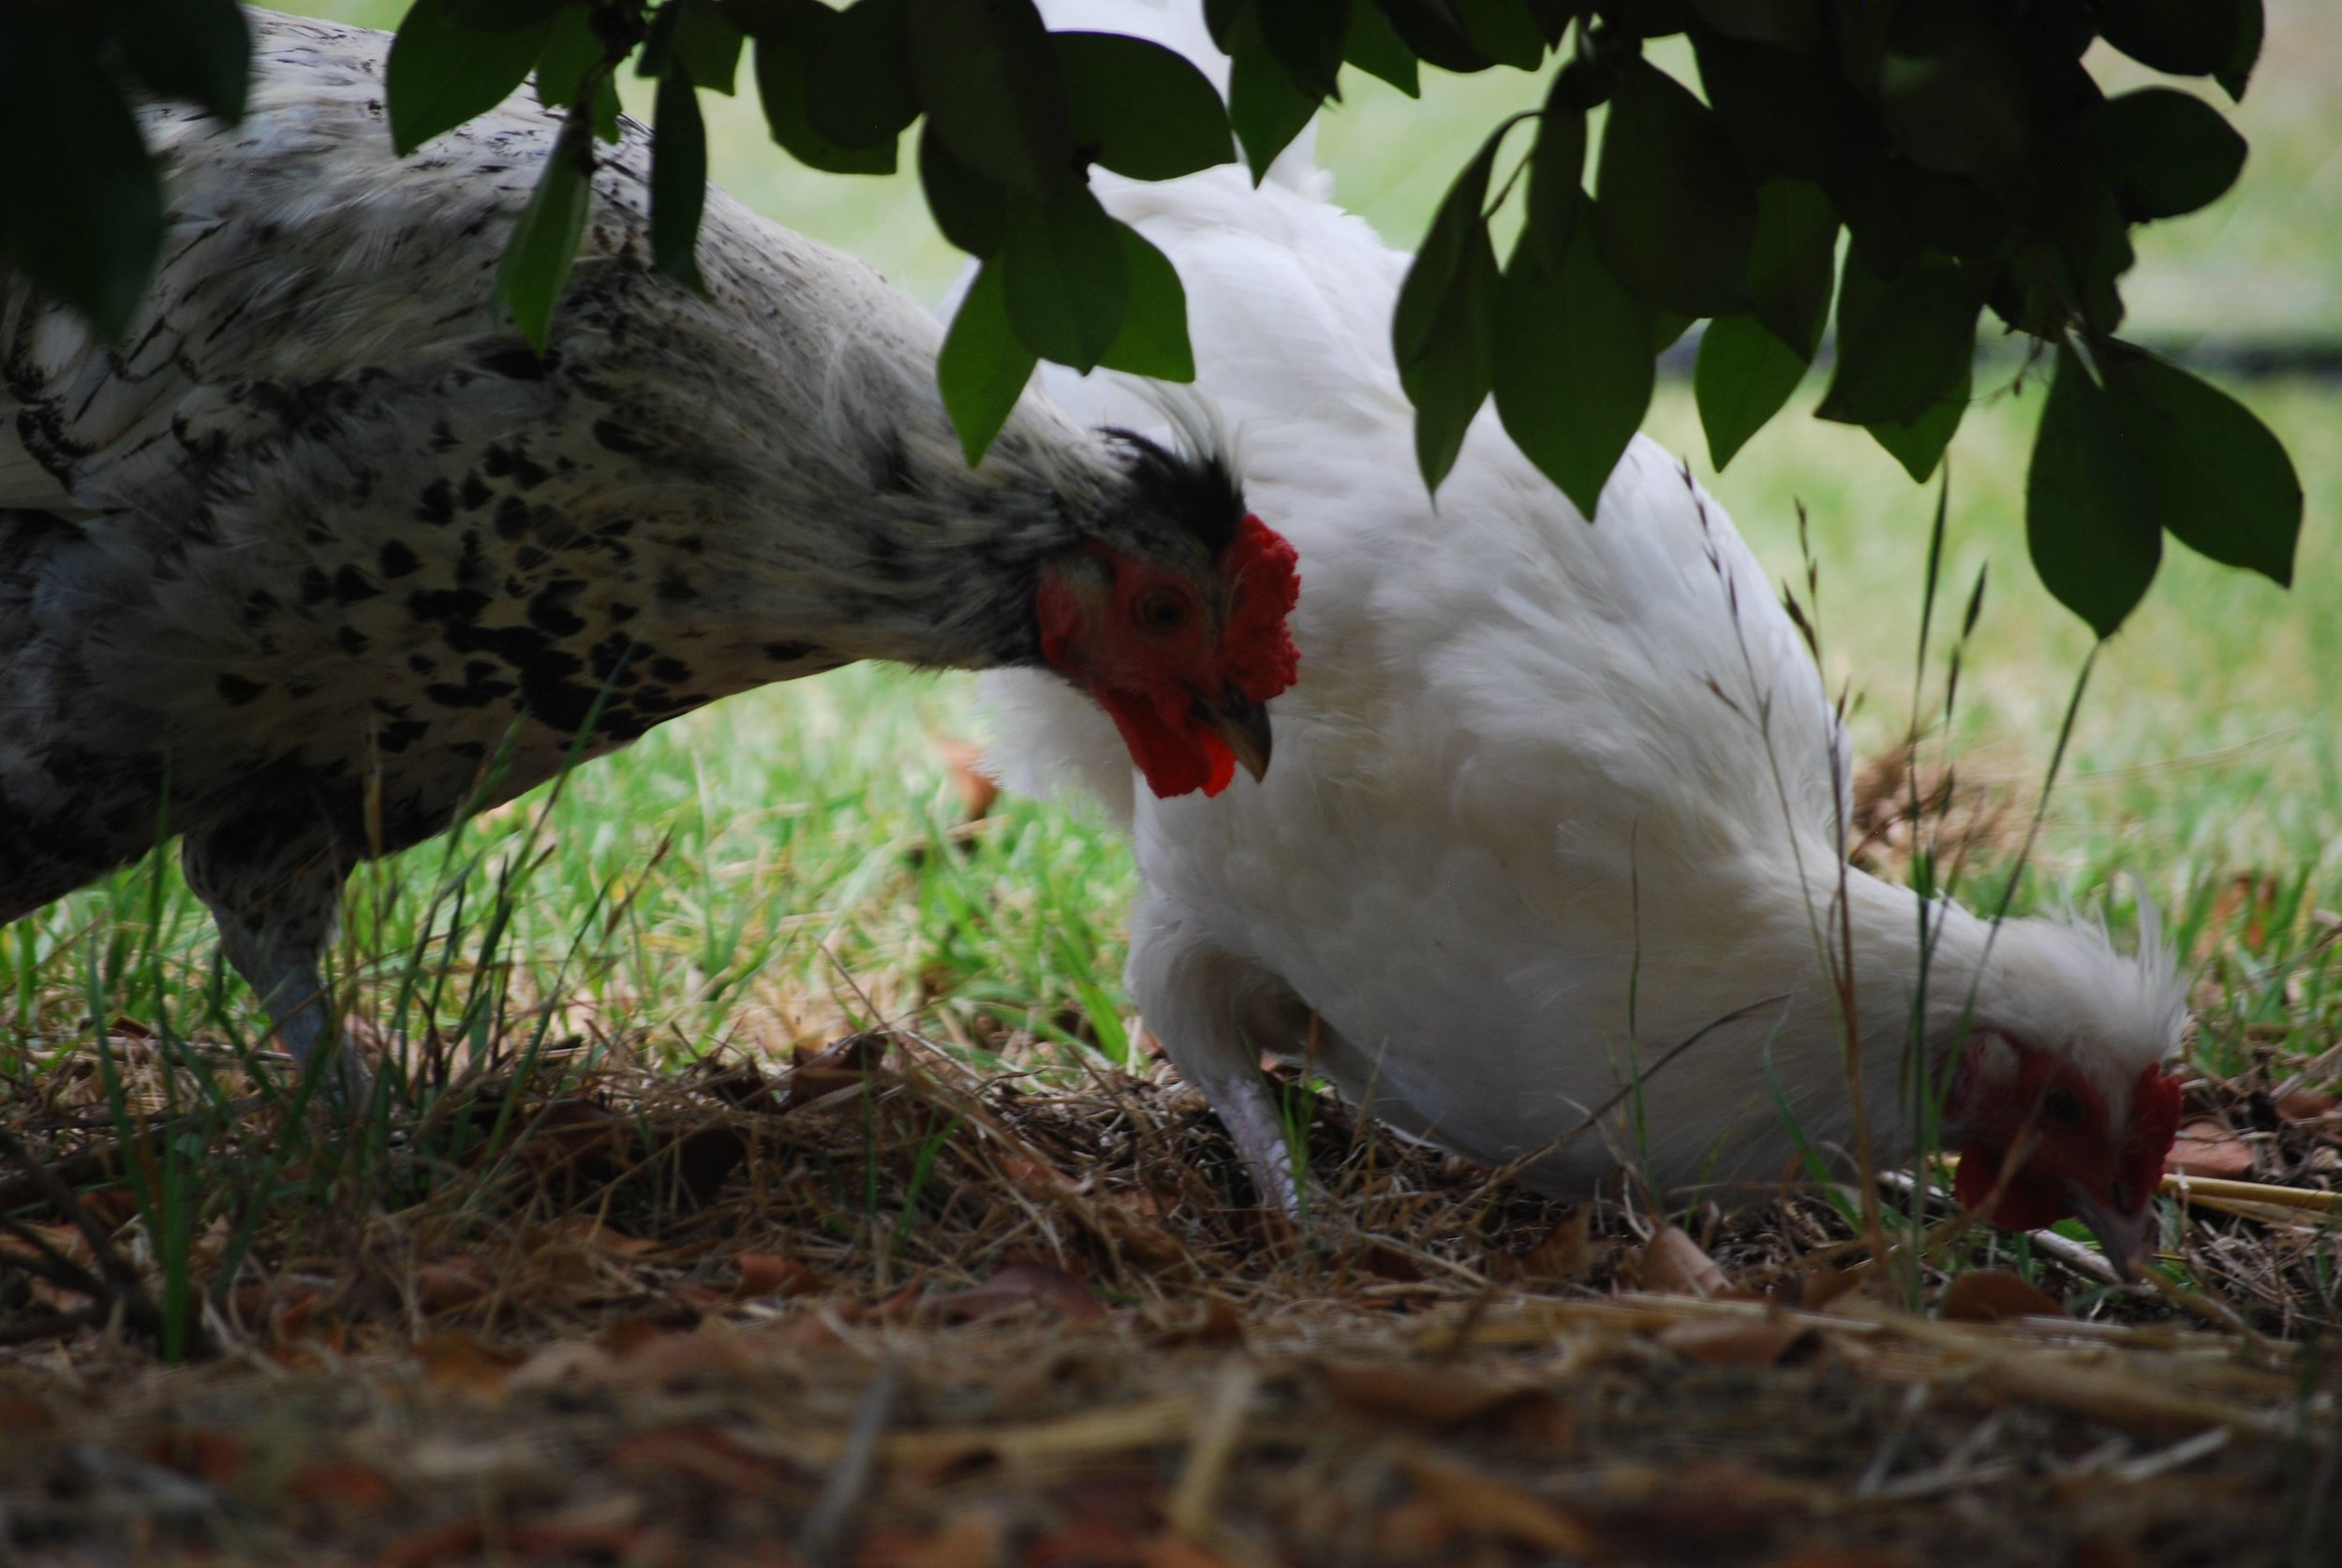 Cornelius & Snowy - First Roosters on the Farm. Rescued from the side of the road, Cornelius and Snowy are now going to have a stress-free life of pecking and dancing!